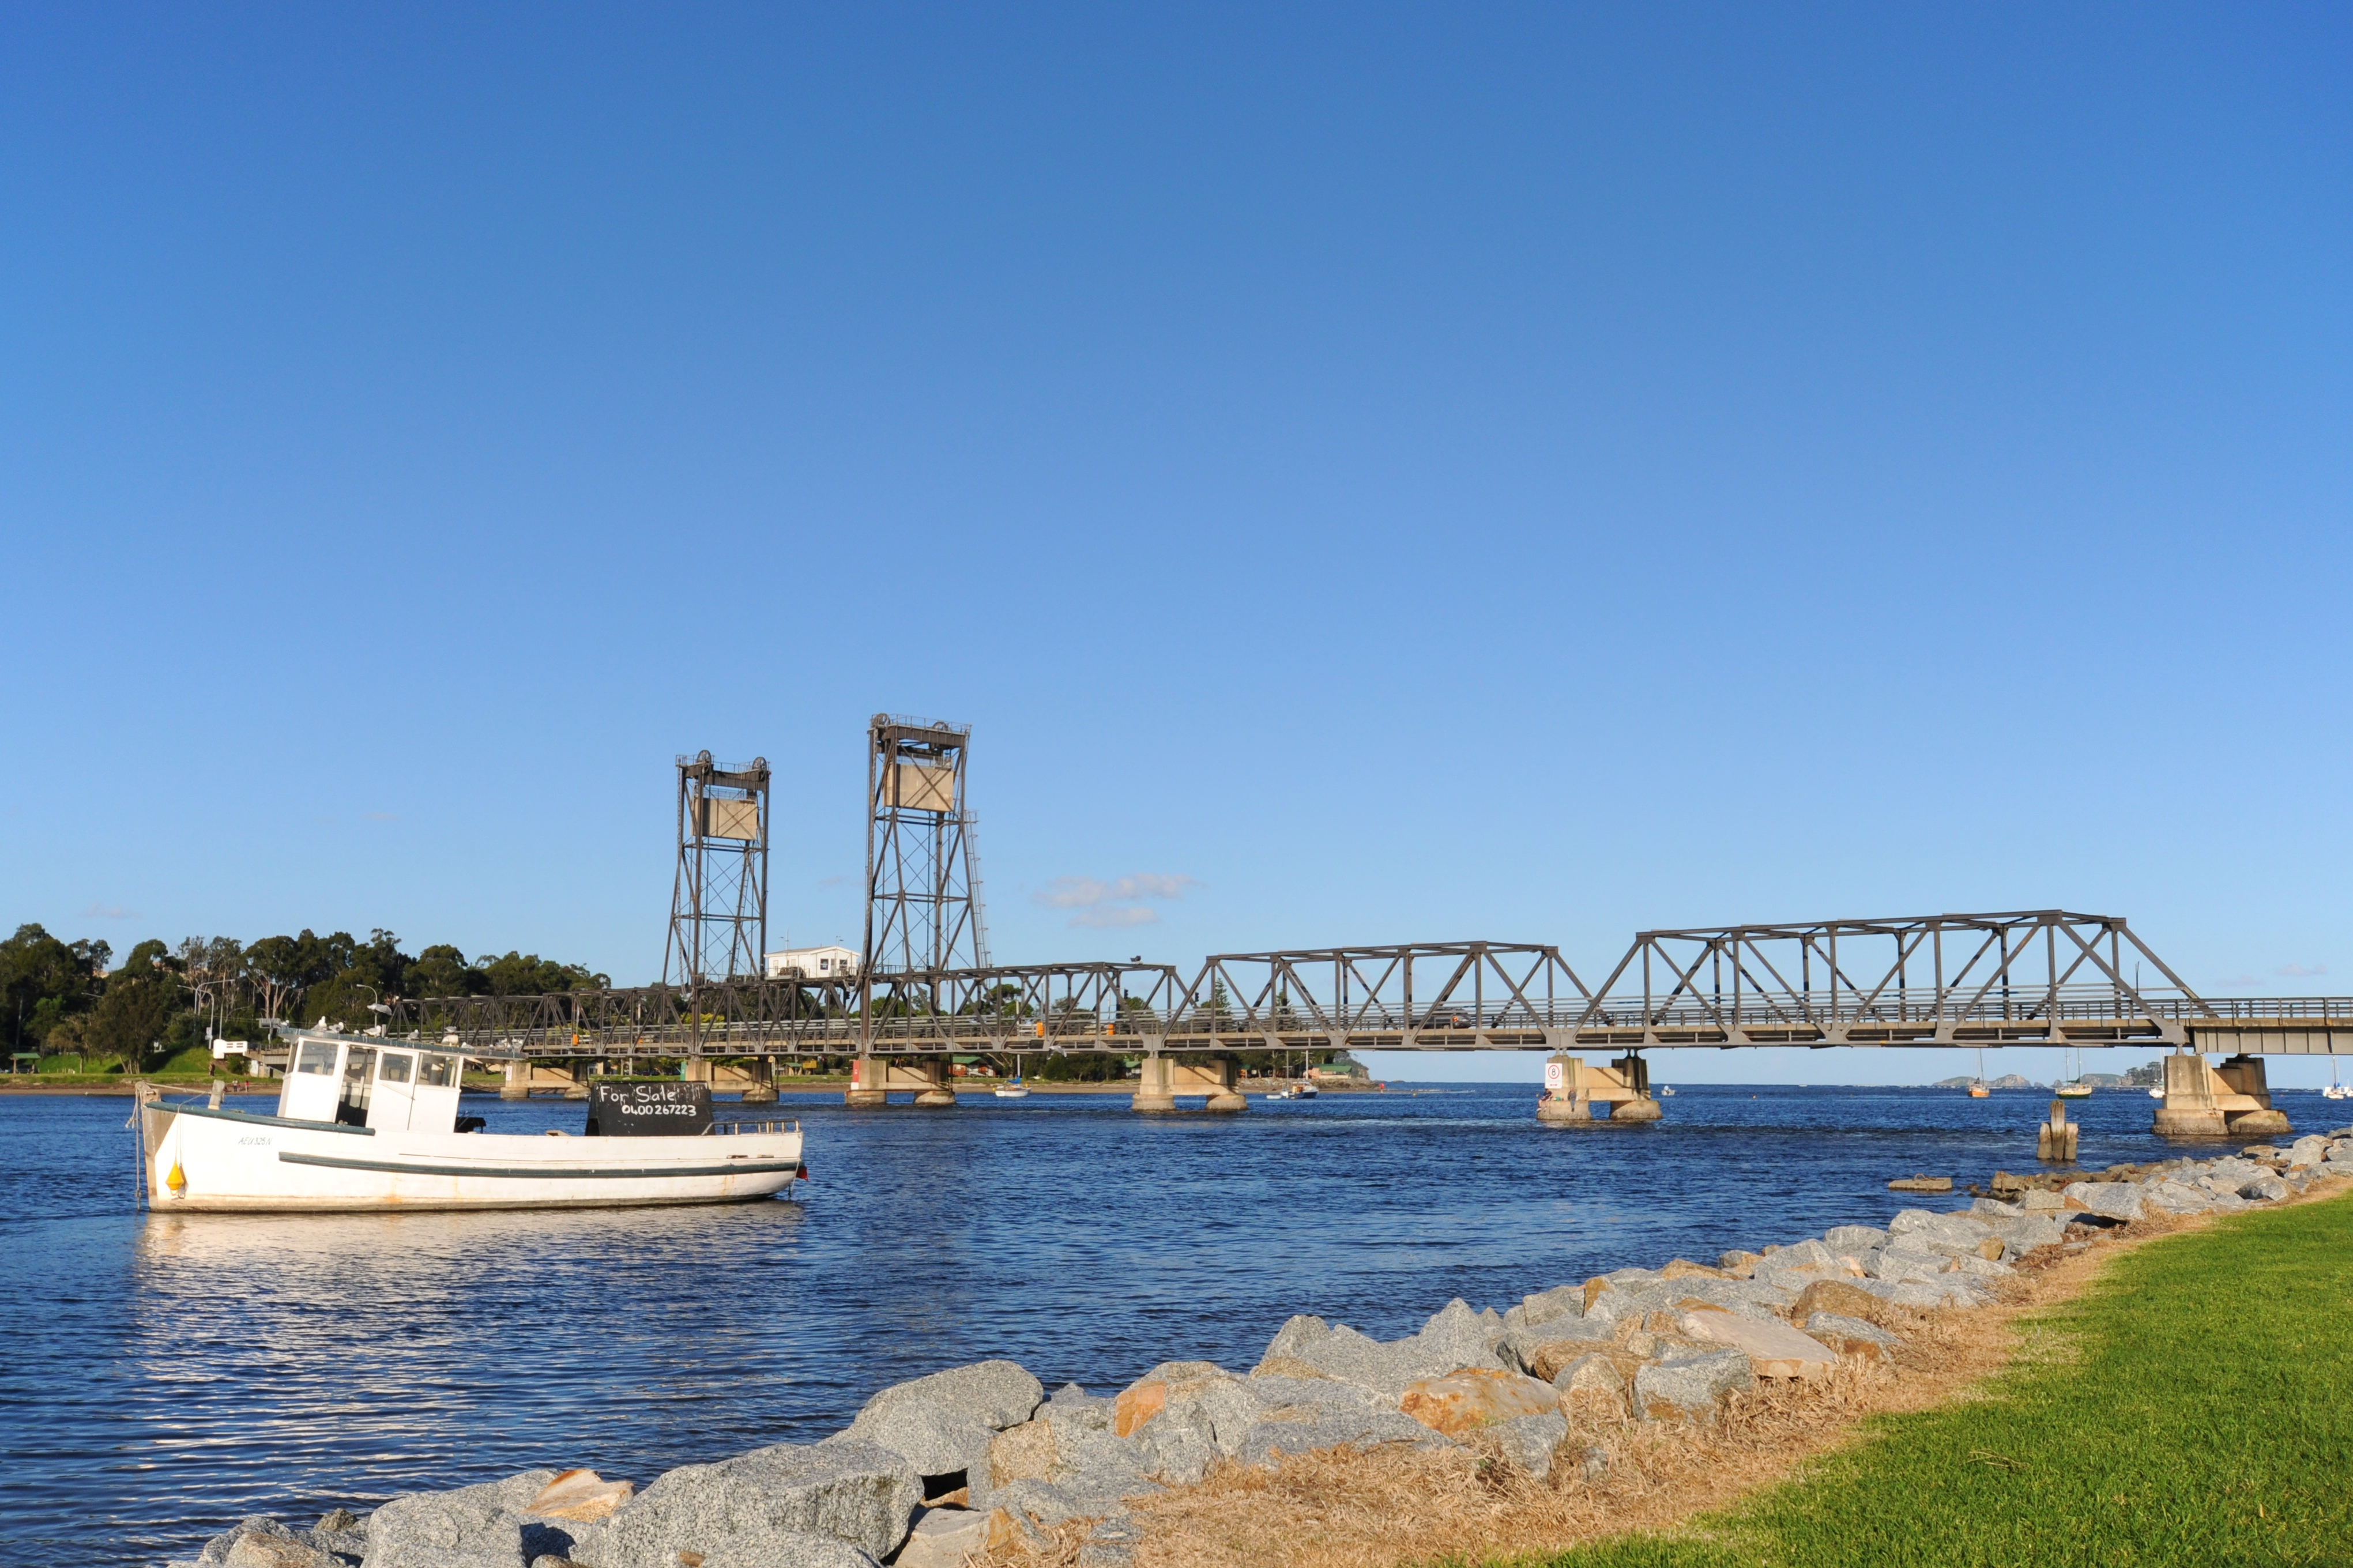 free online dating & chat in batemans bay Batemans bay community and visitor information portal: an australian made website for batemans bay that benefits locals, tourism and business.